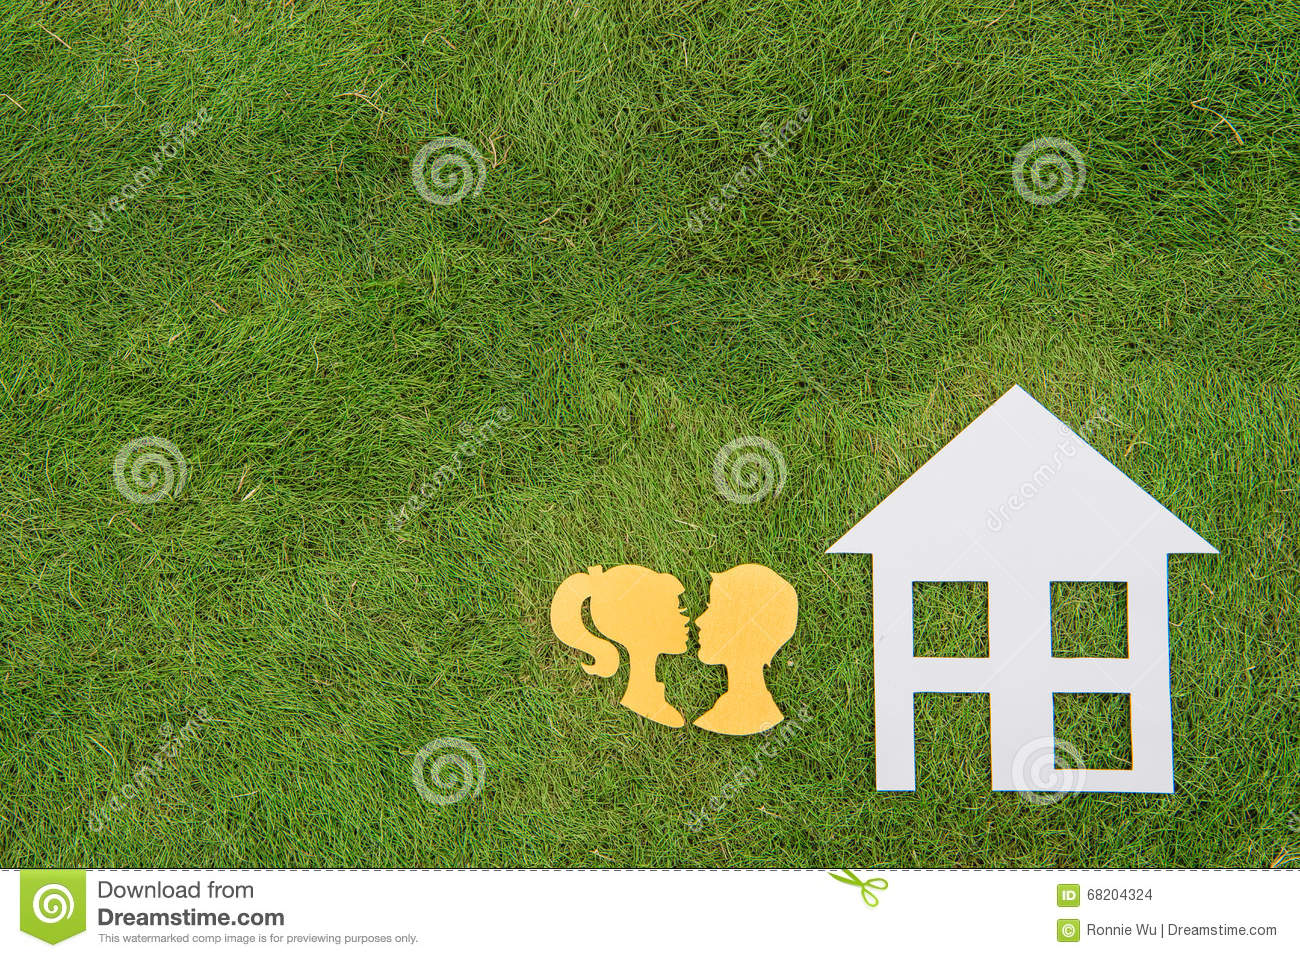 Build Green Homes couple build green homes, green living stock photo - image: 68204324